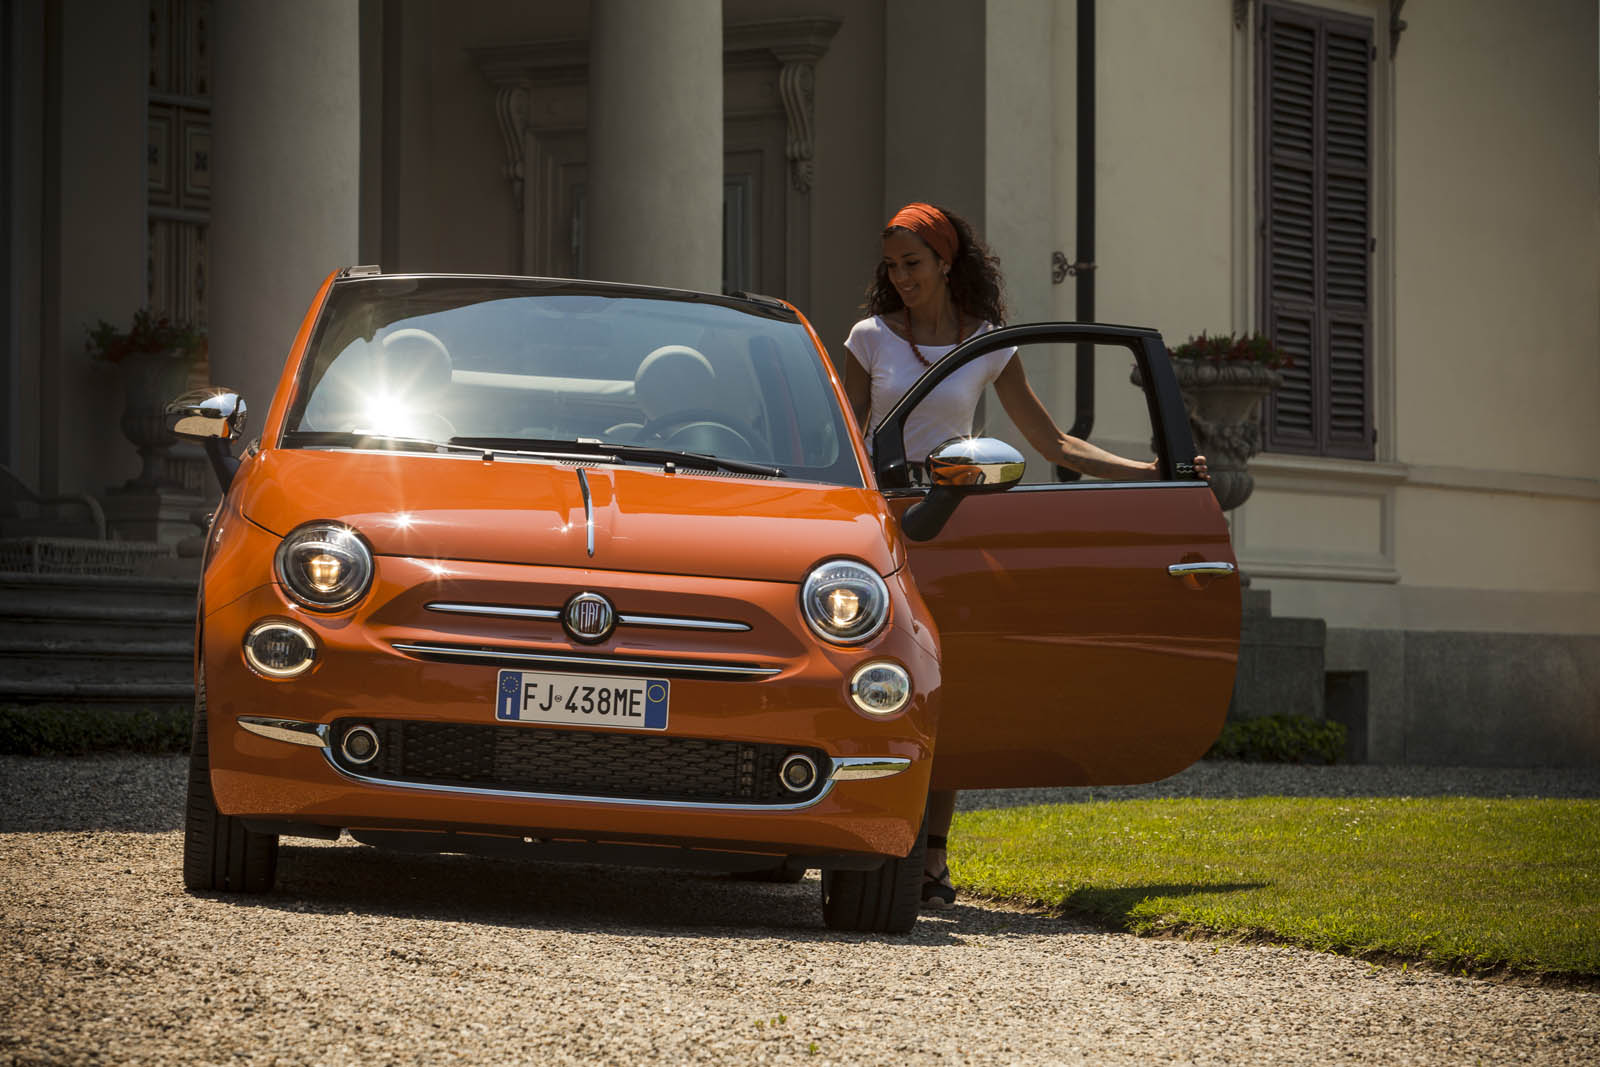 fiat 500 anniversario edition blows out some cheaper candles w video carscoops. Black Bedroom Furniture Sets. Home Design Ideas